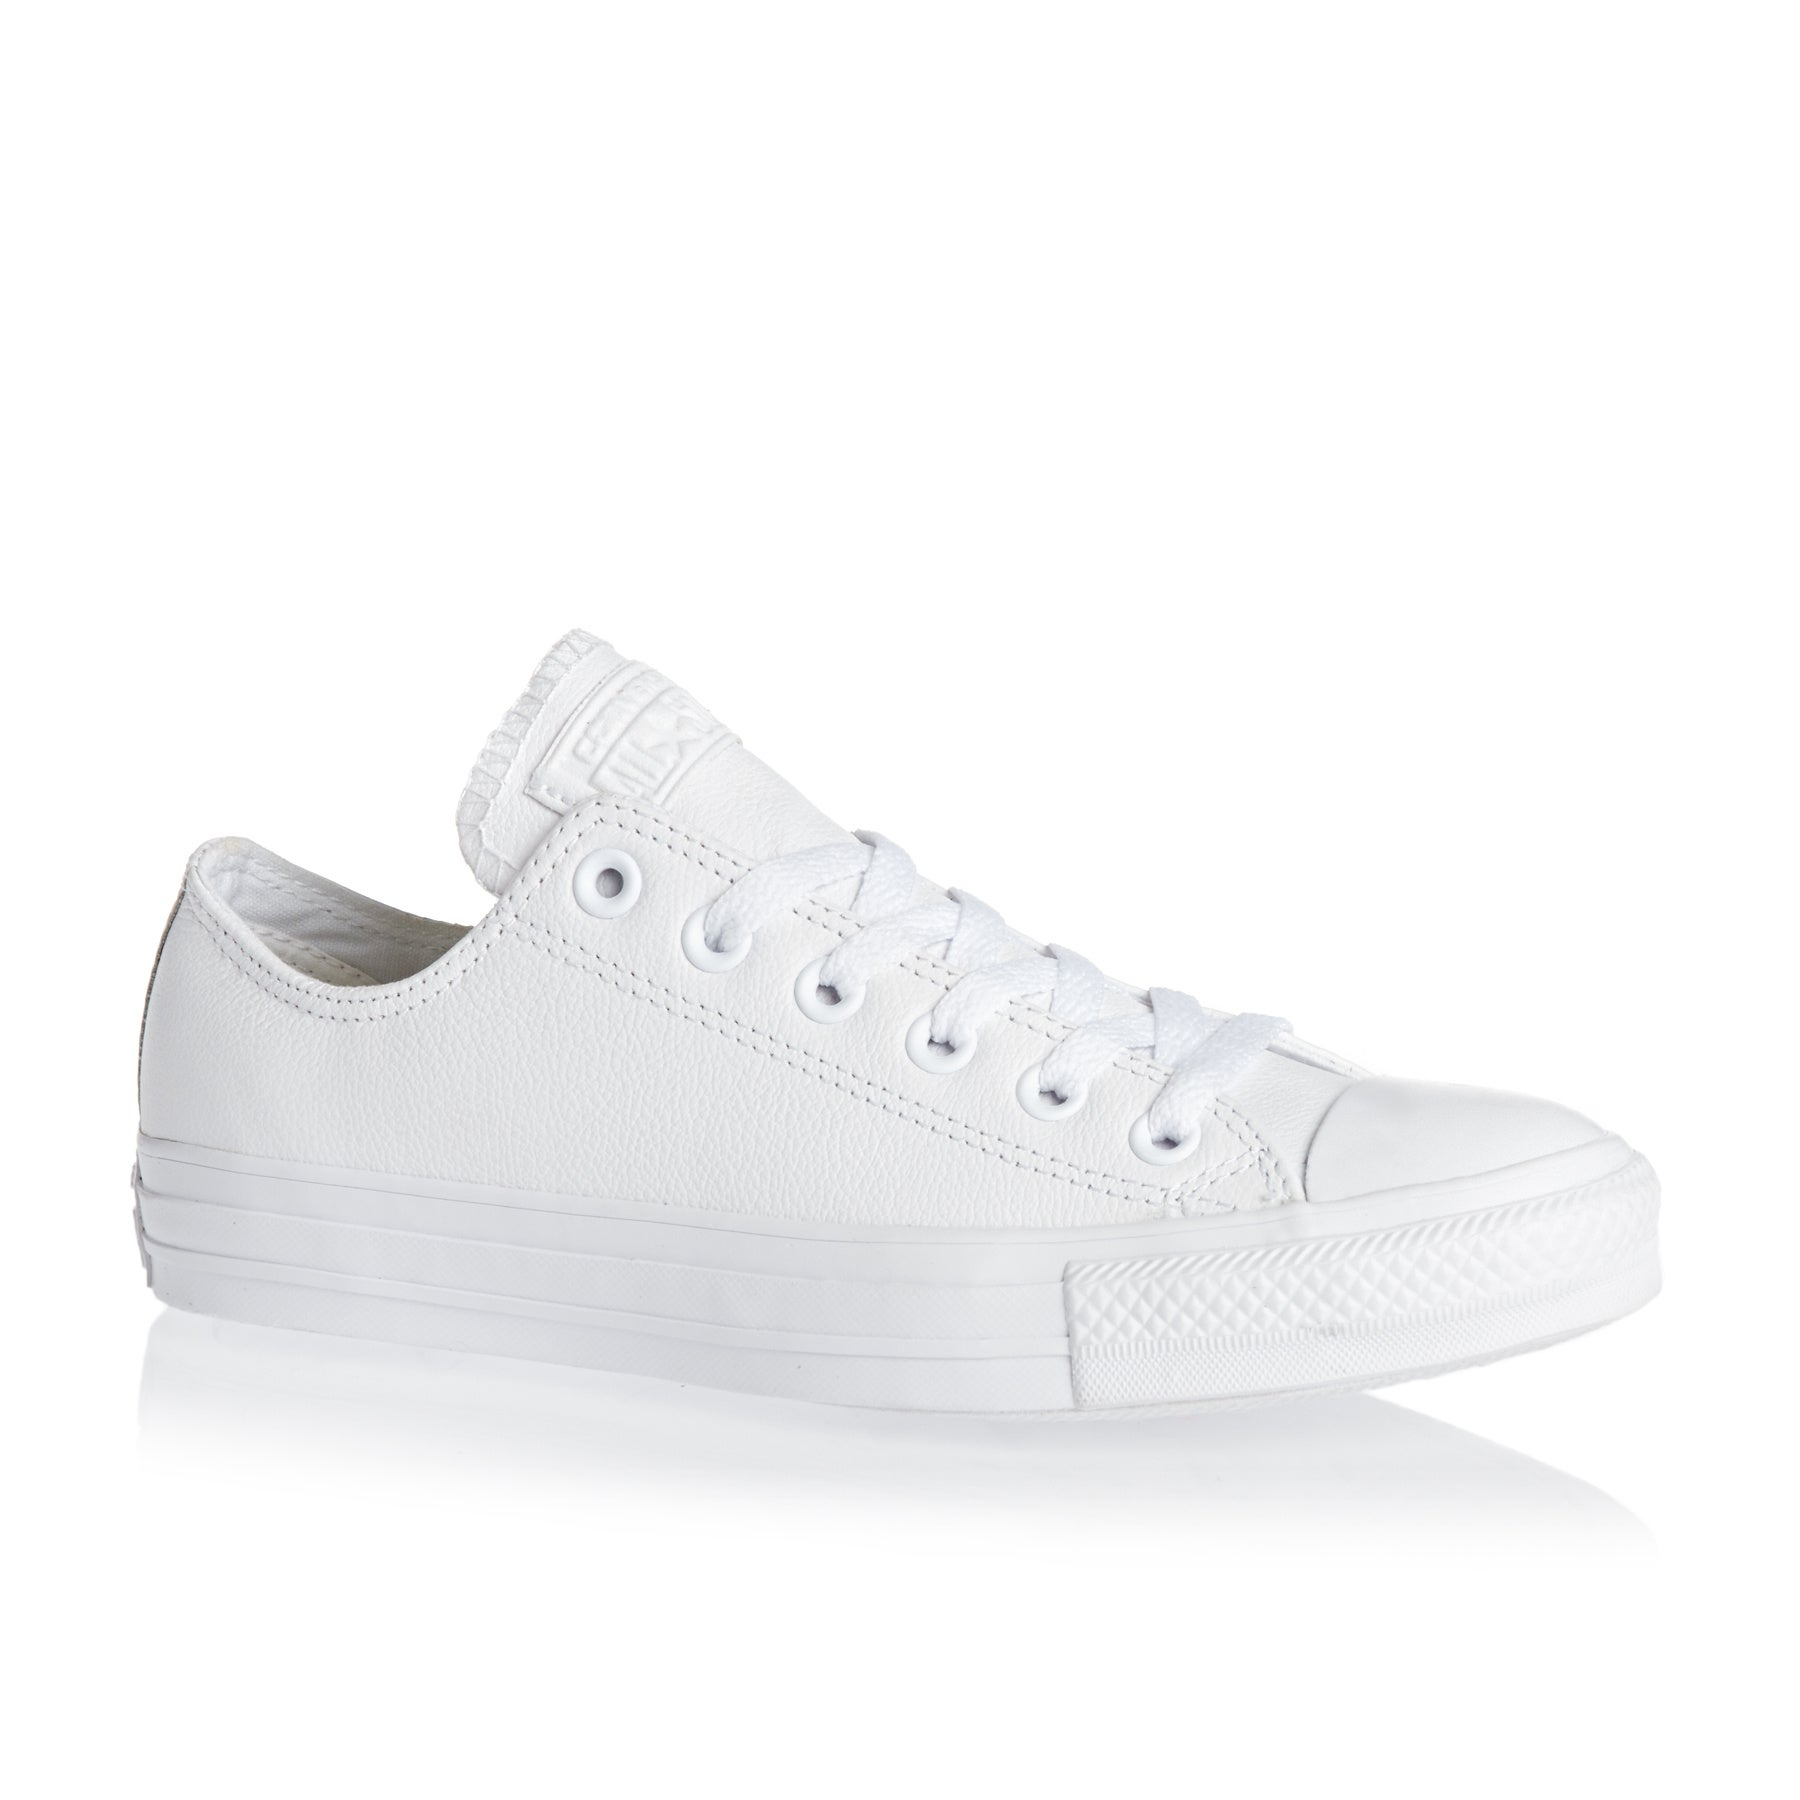 Converse Chuck Taylor All Stars Leather Shoes - White